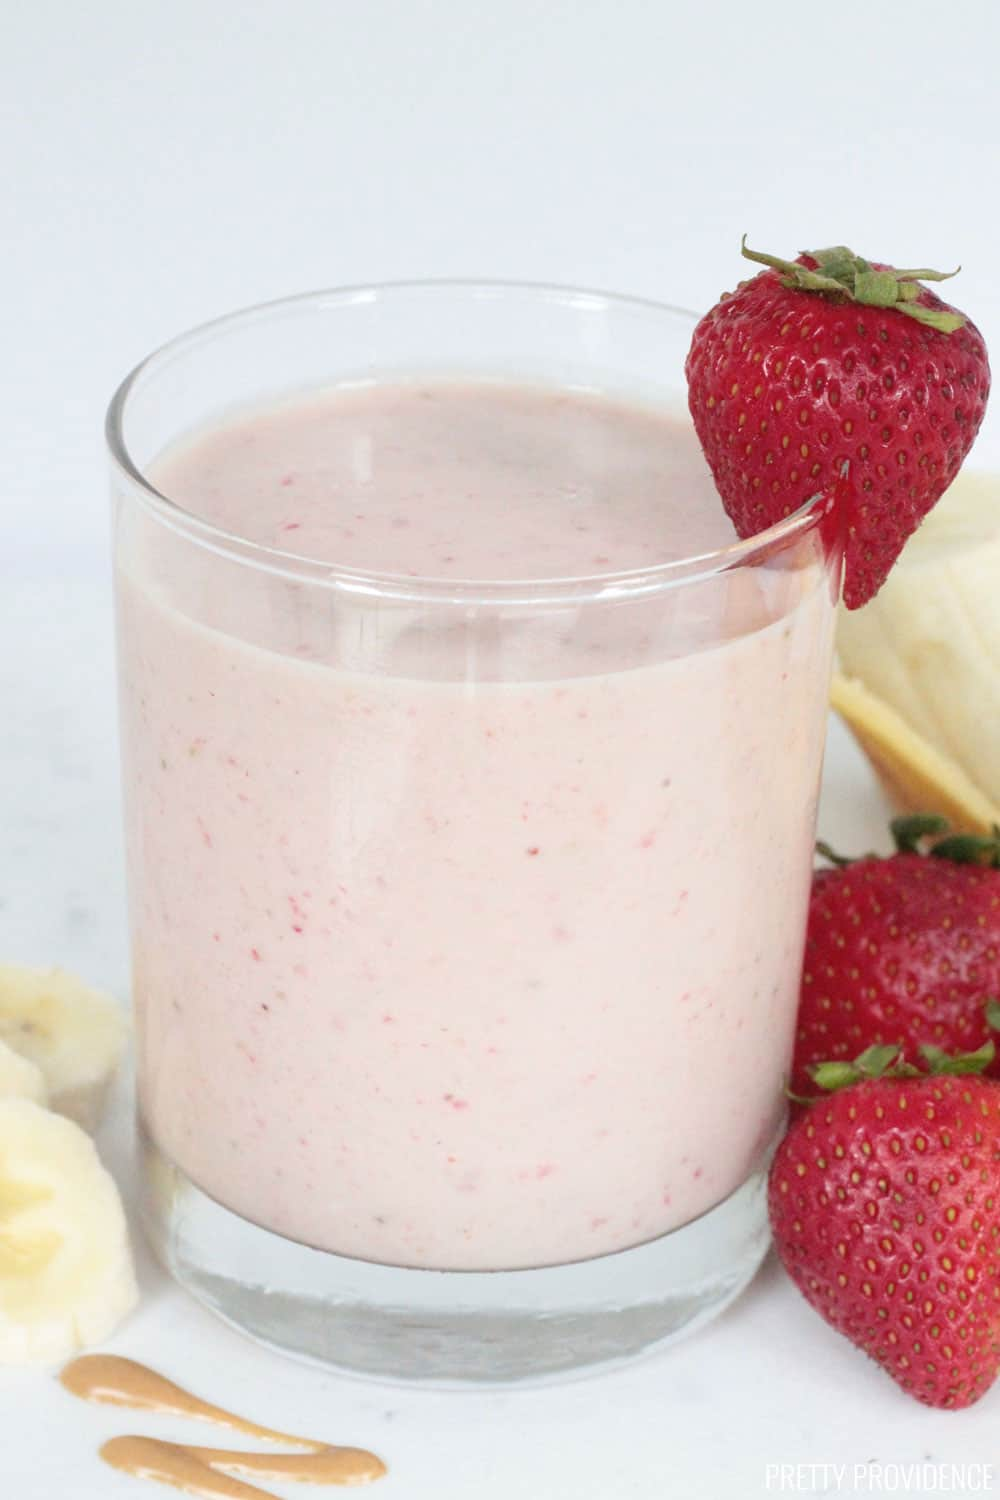 Strawberry banana protein smoothie with strawberries on the side and banana slices.